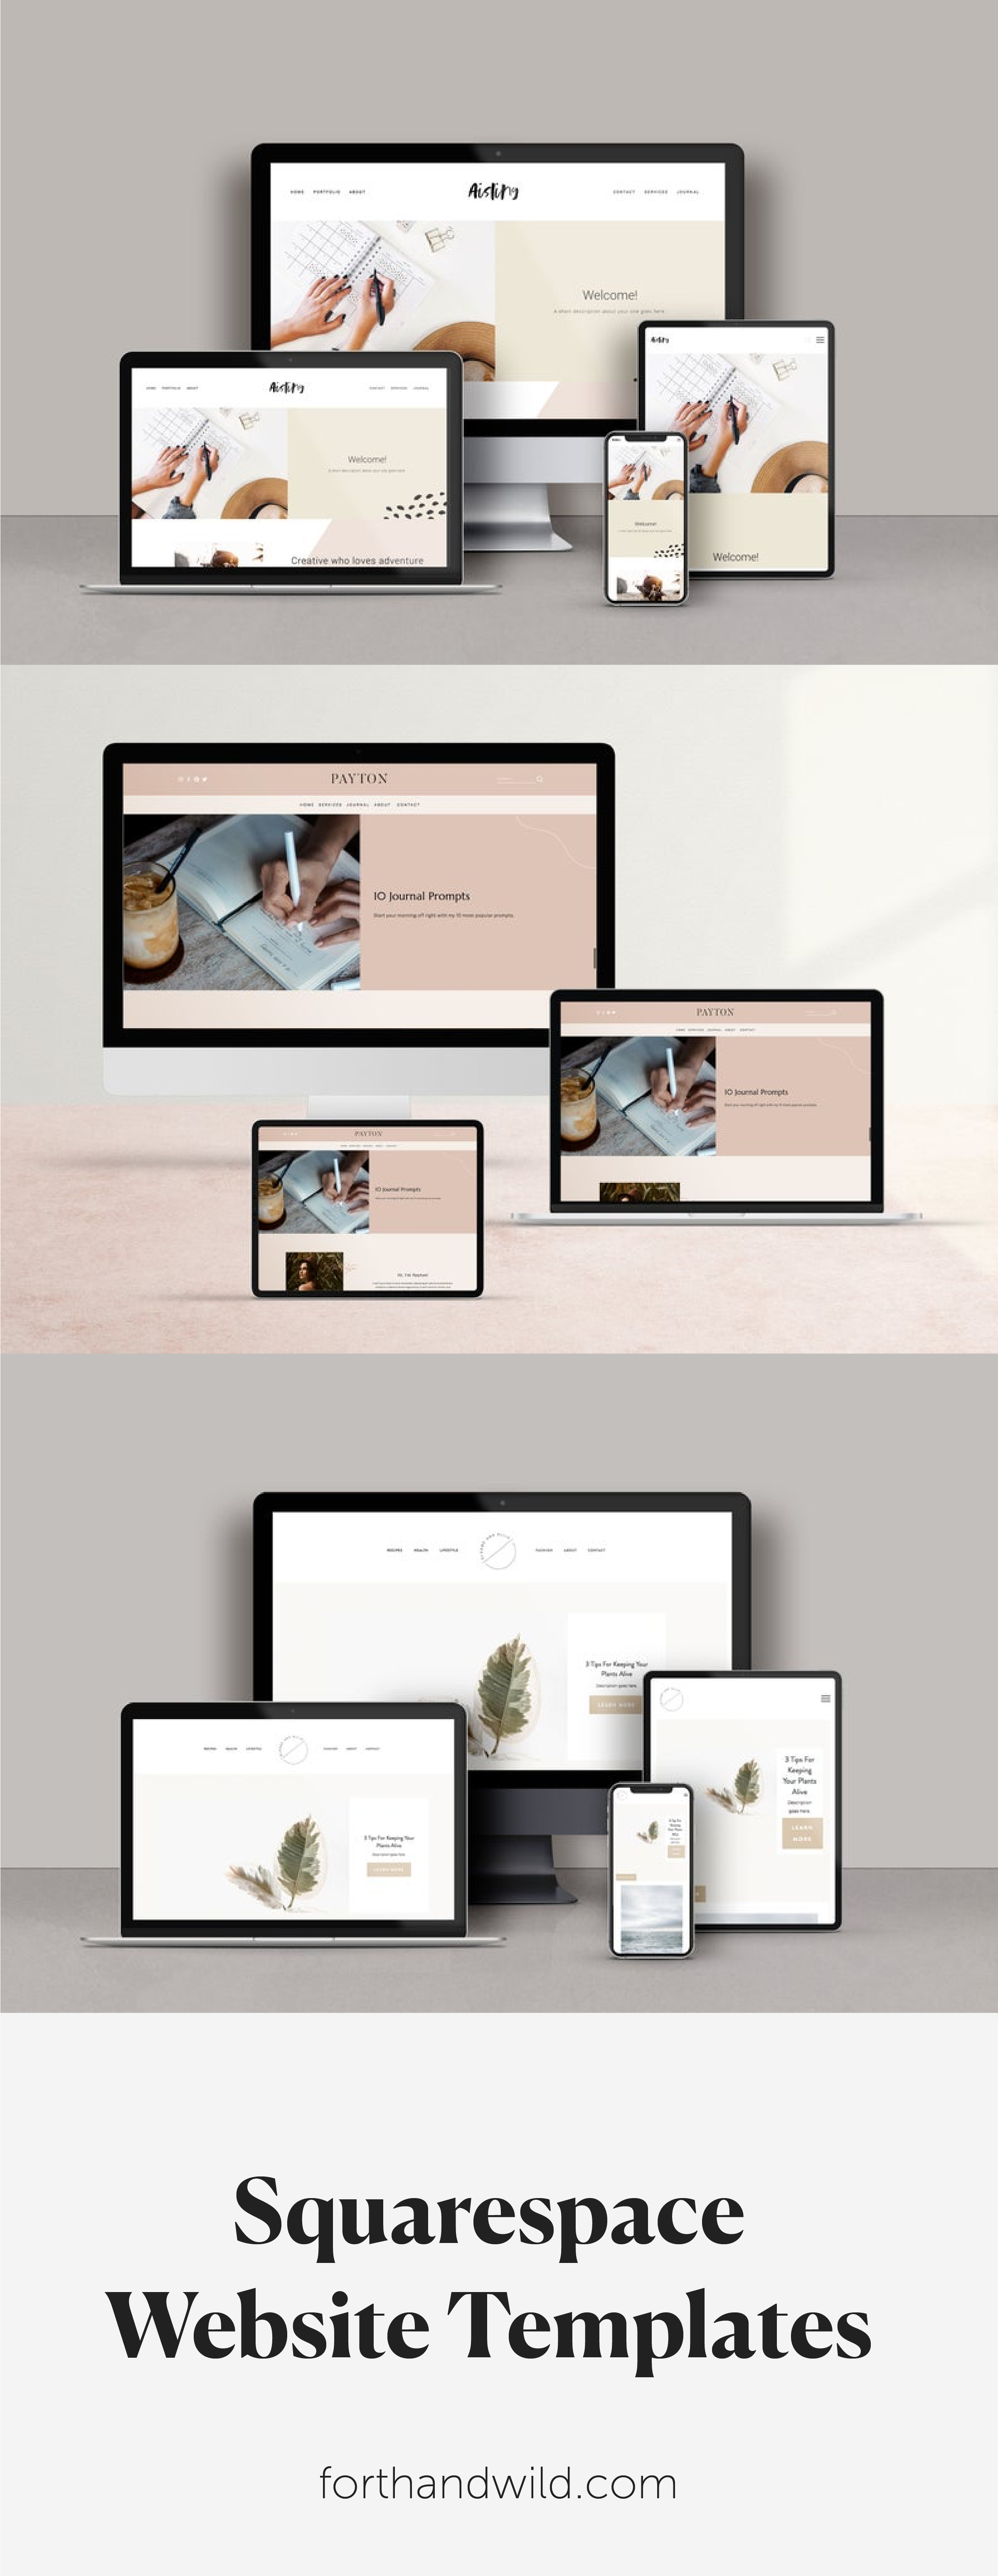 Forth And Wild Squarespace Templates Squarespace Template Design Squarespace Templates Business Card Template Design